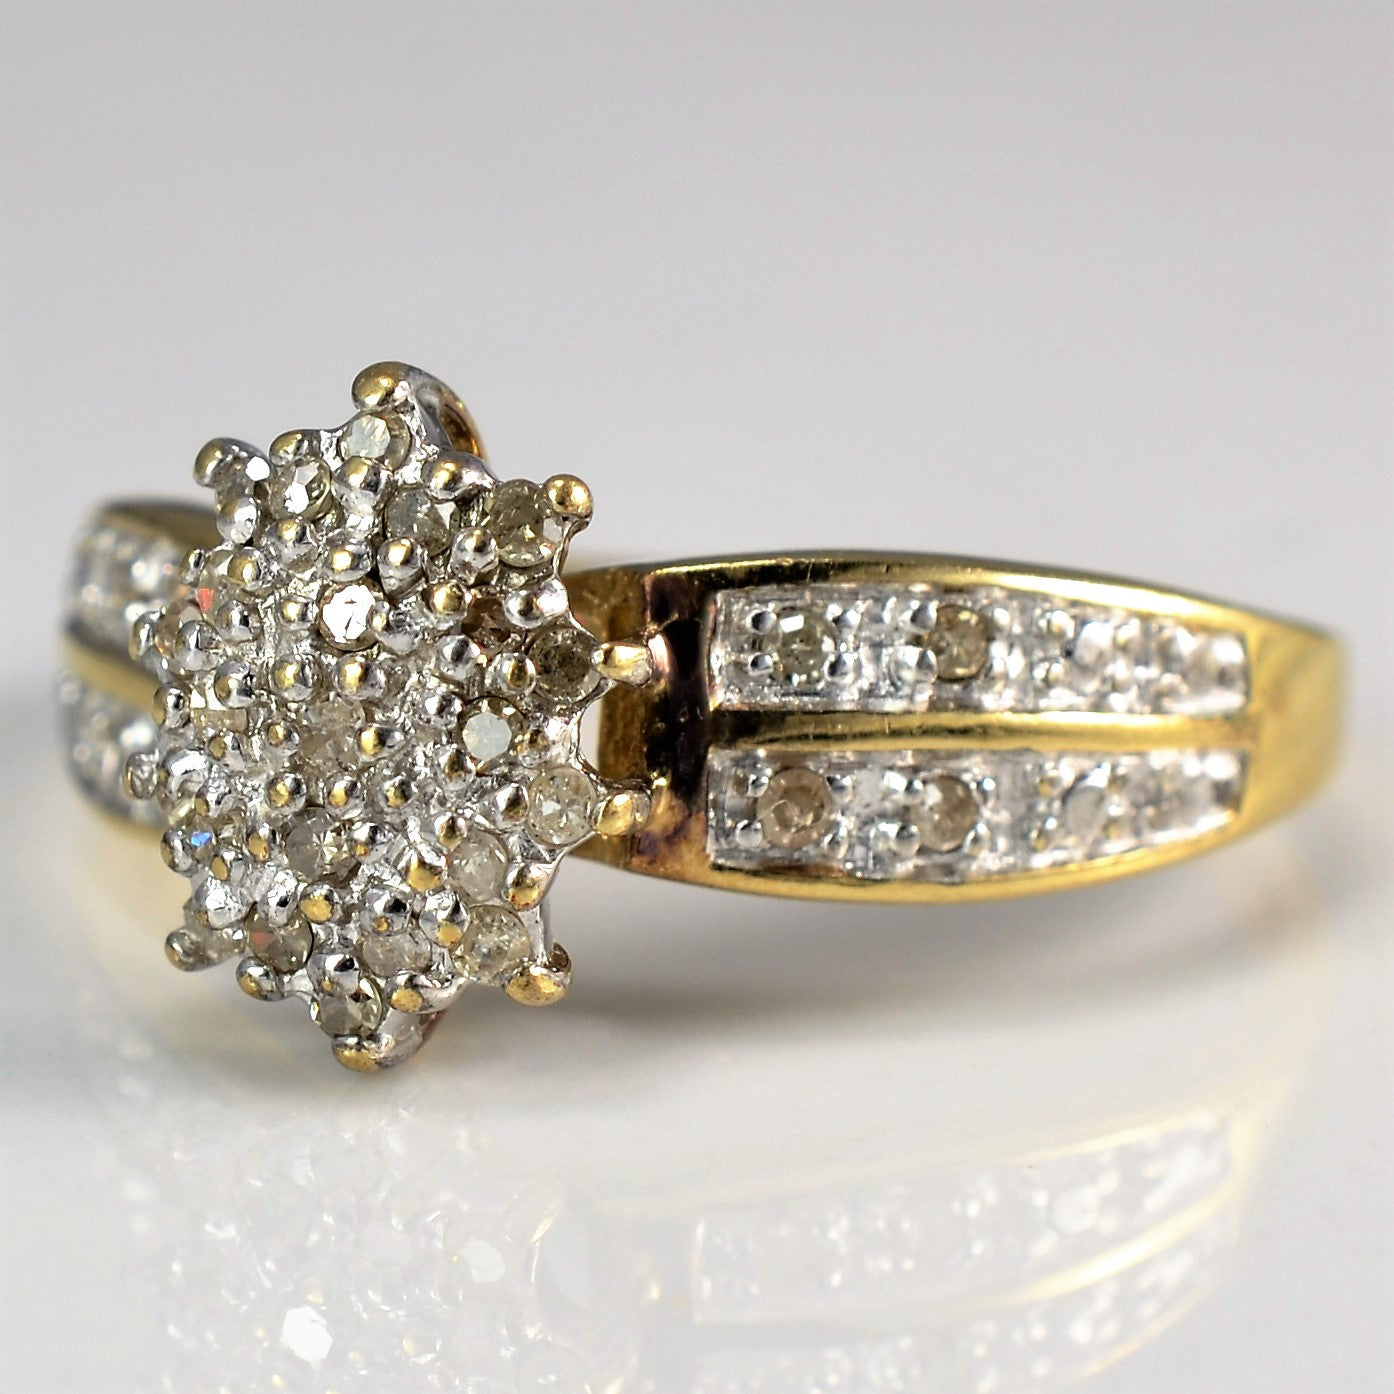 Diamond Cluster Cocktail Ring | 0.20 ctw, SZ 8.75 |